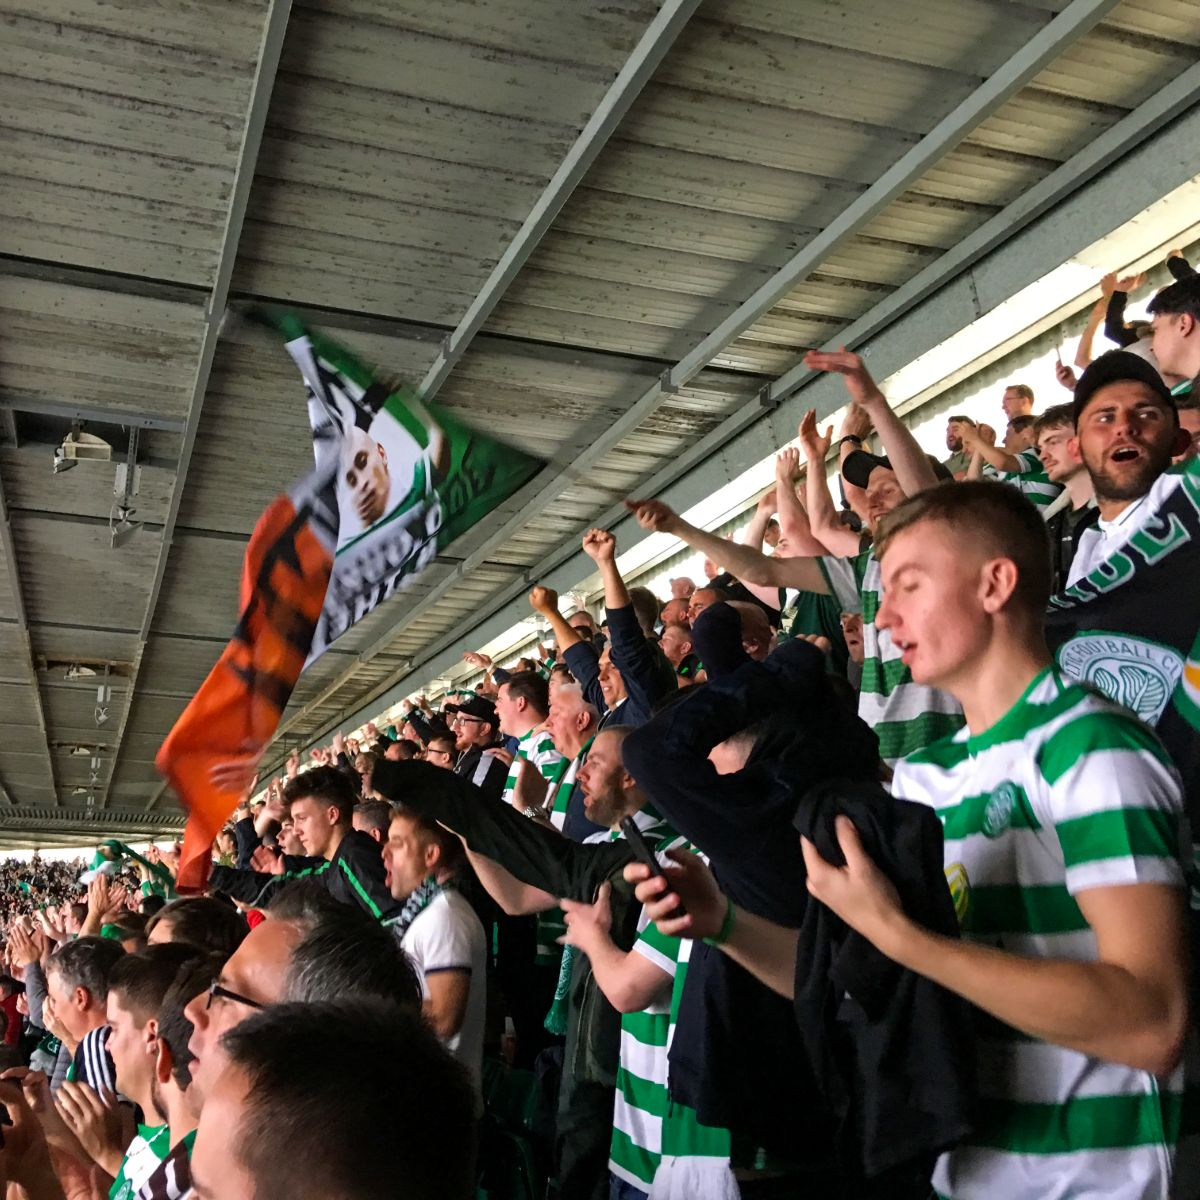 Day 3 - Match Day Experience: Celtic x Rangers